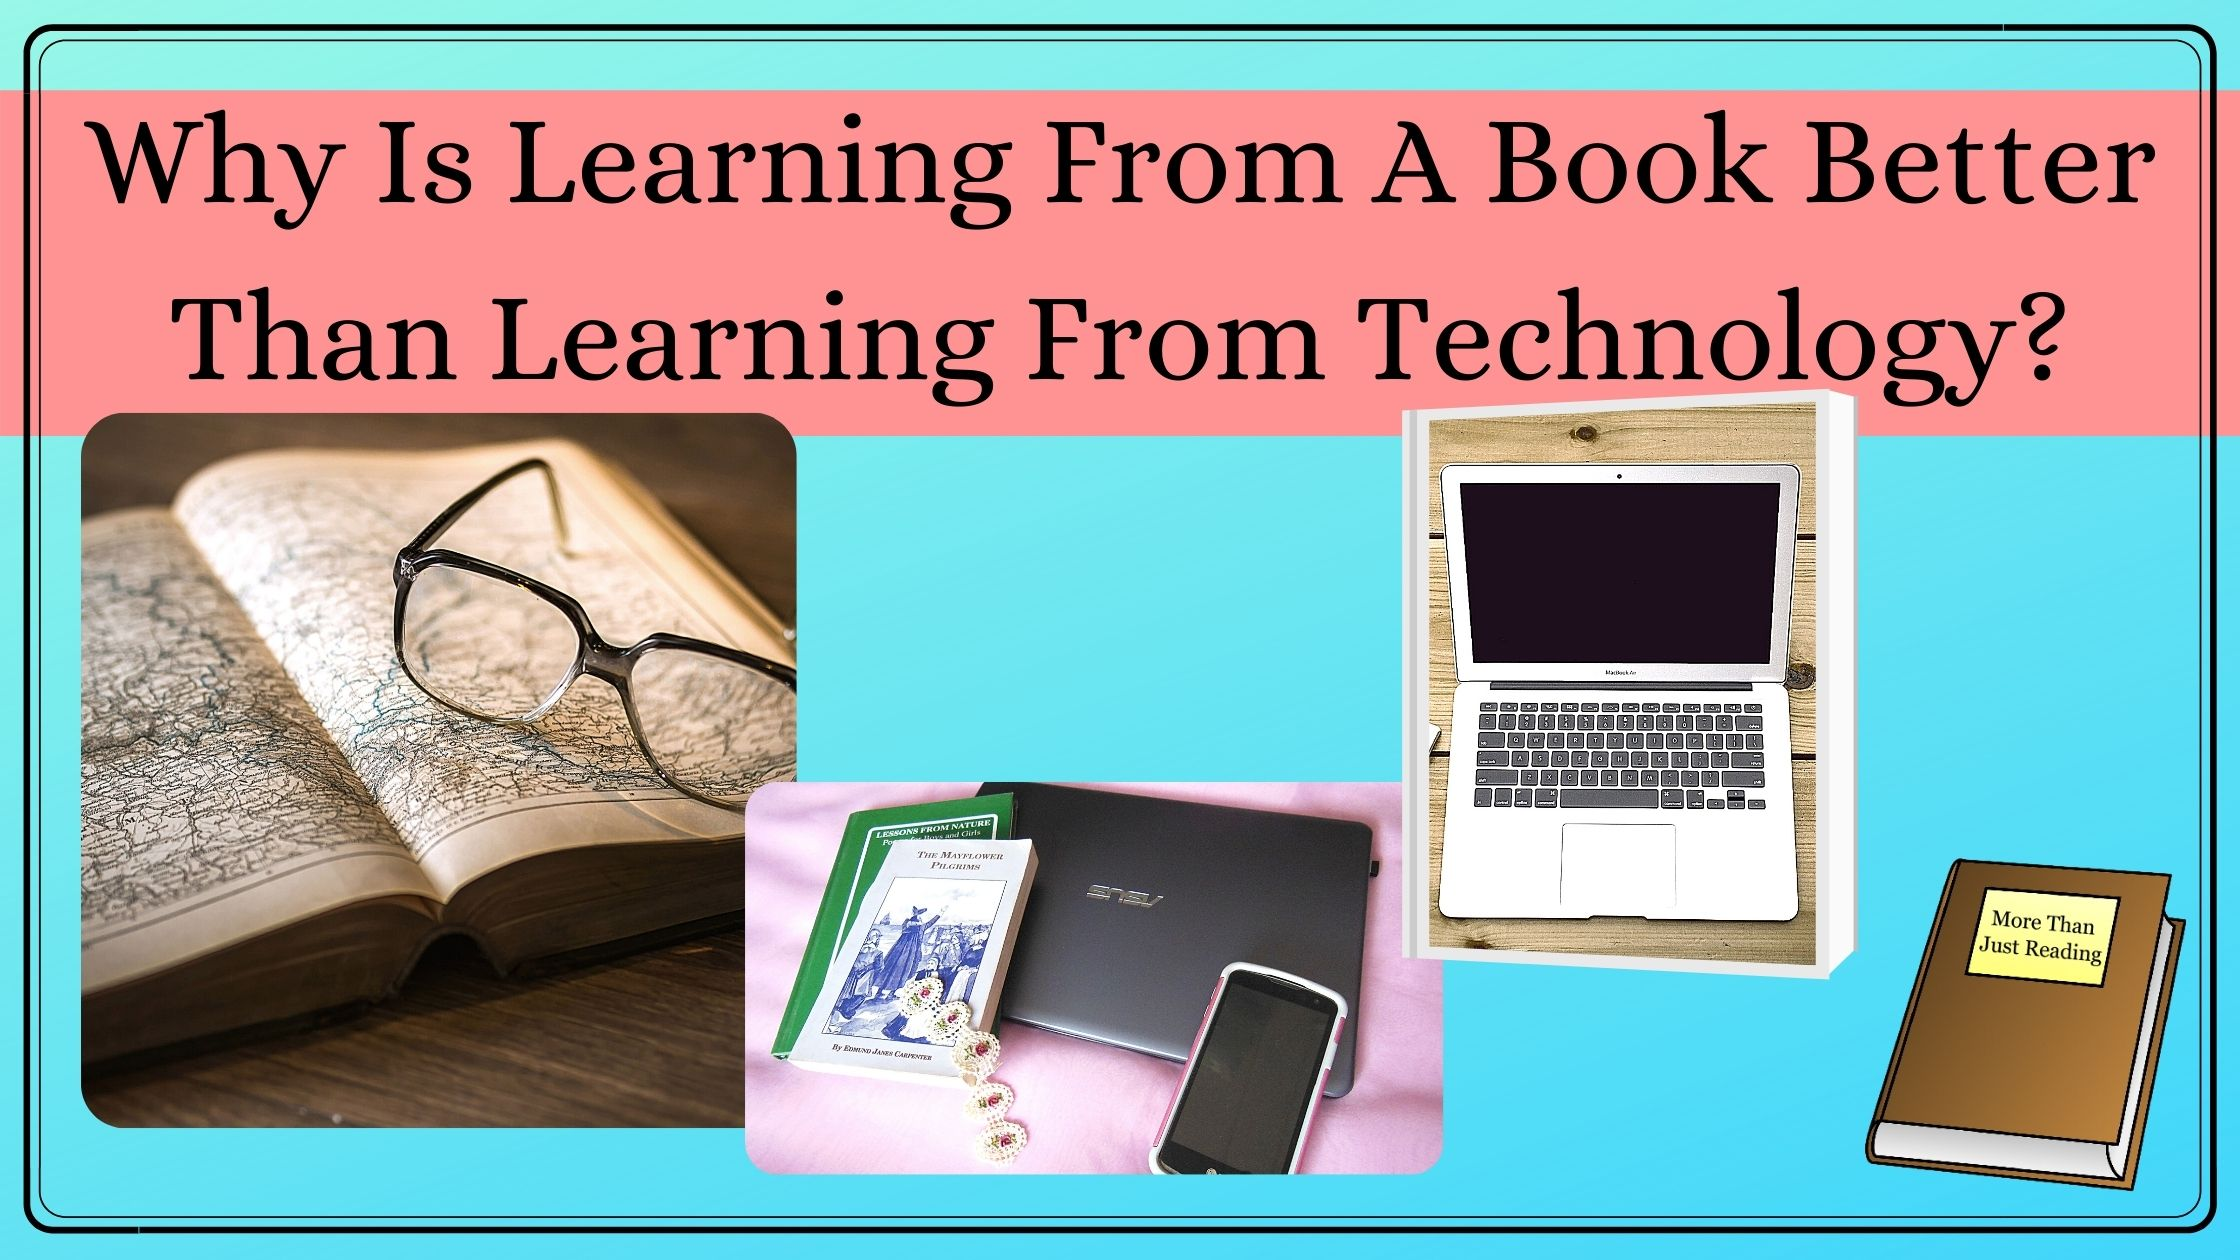 Title of blogpost and pictures of books and technology